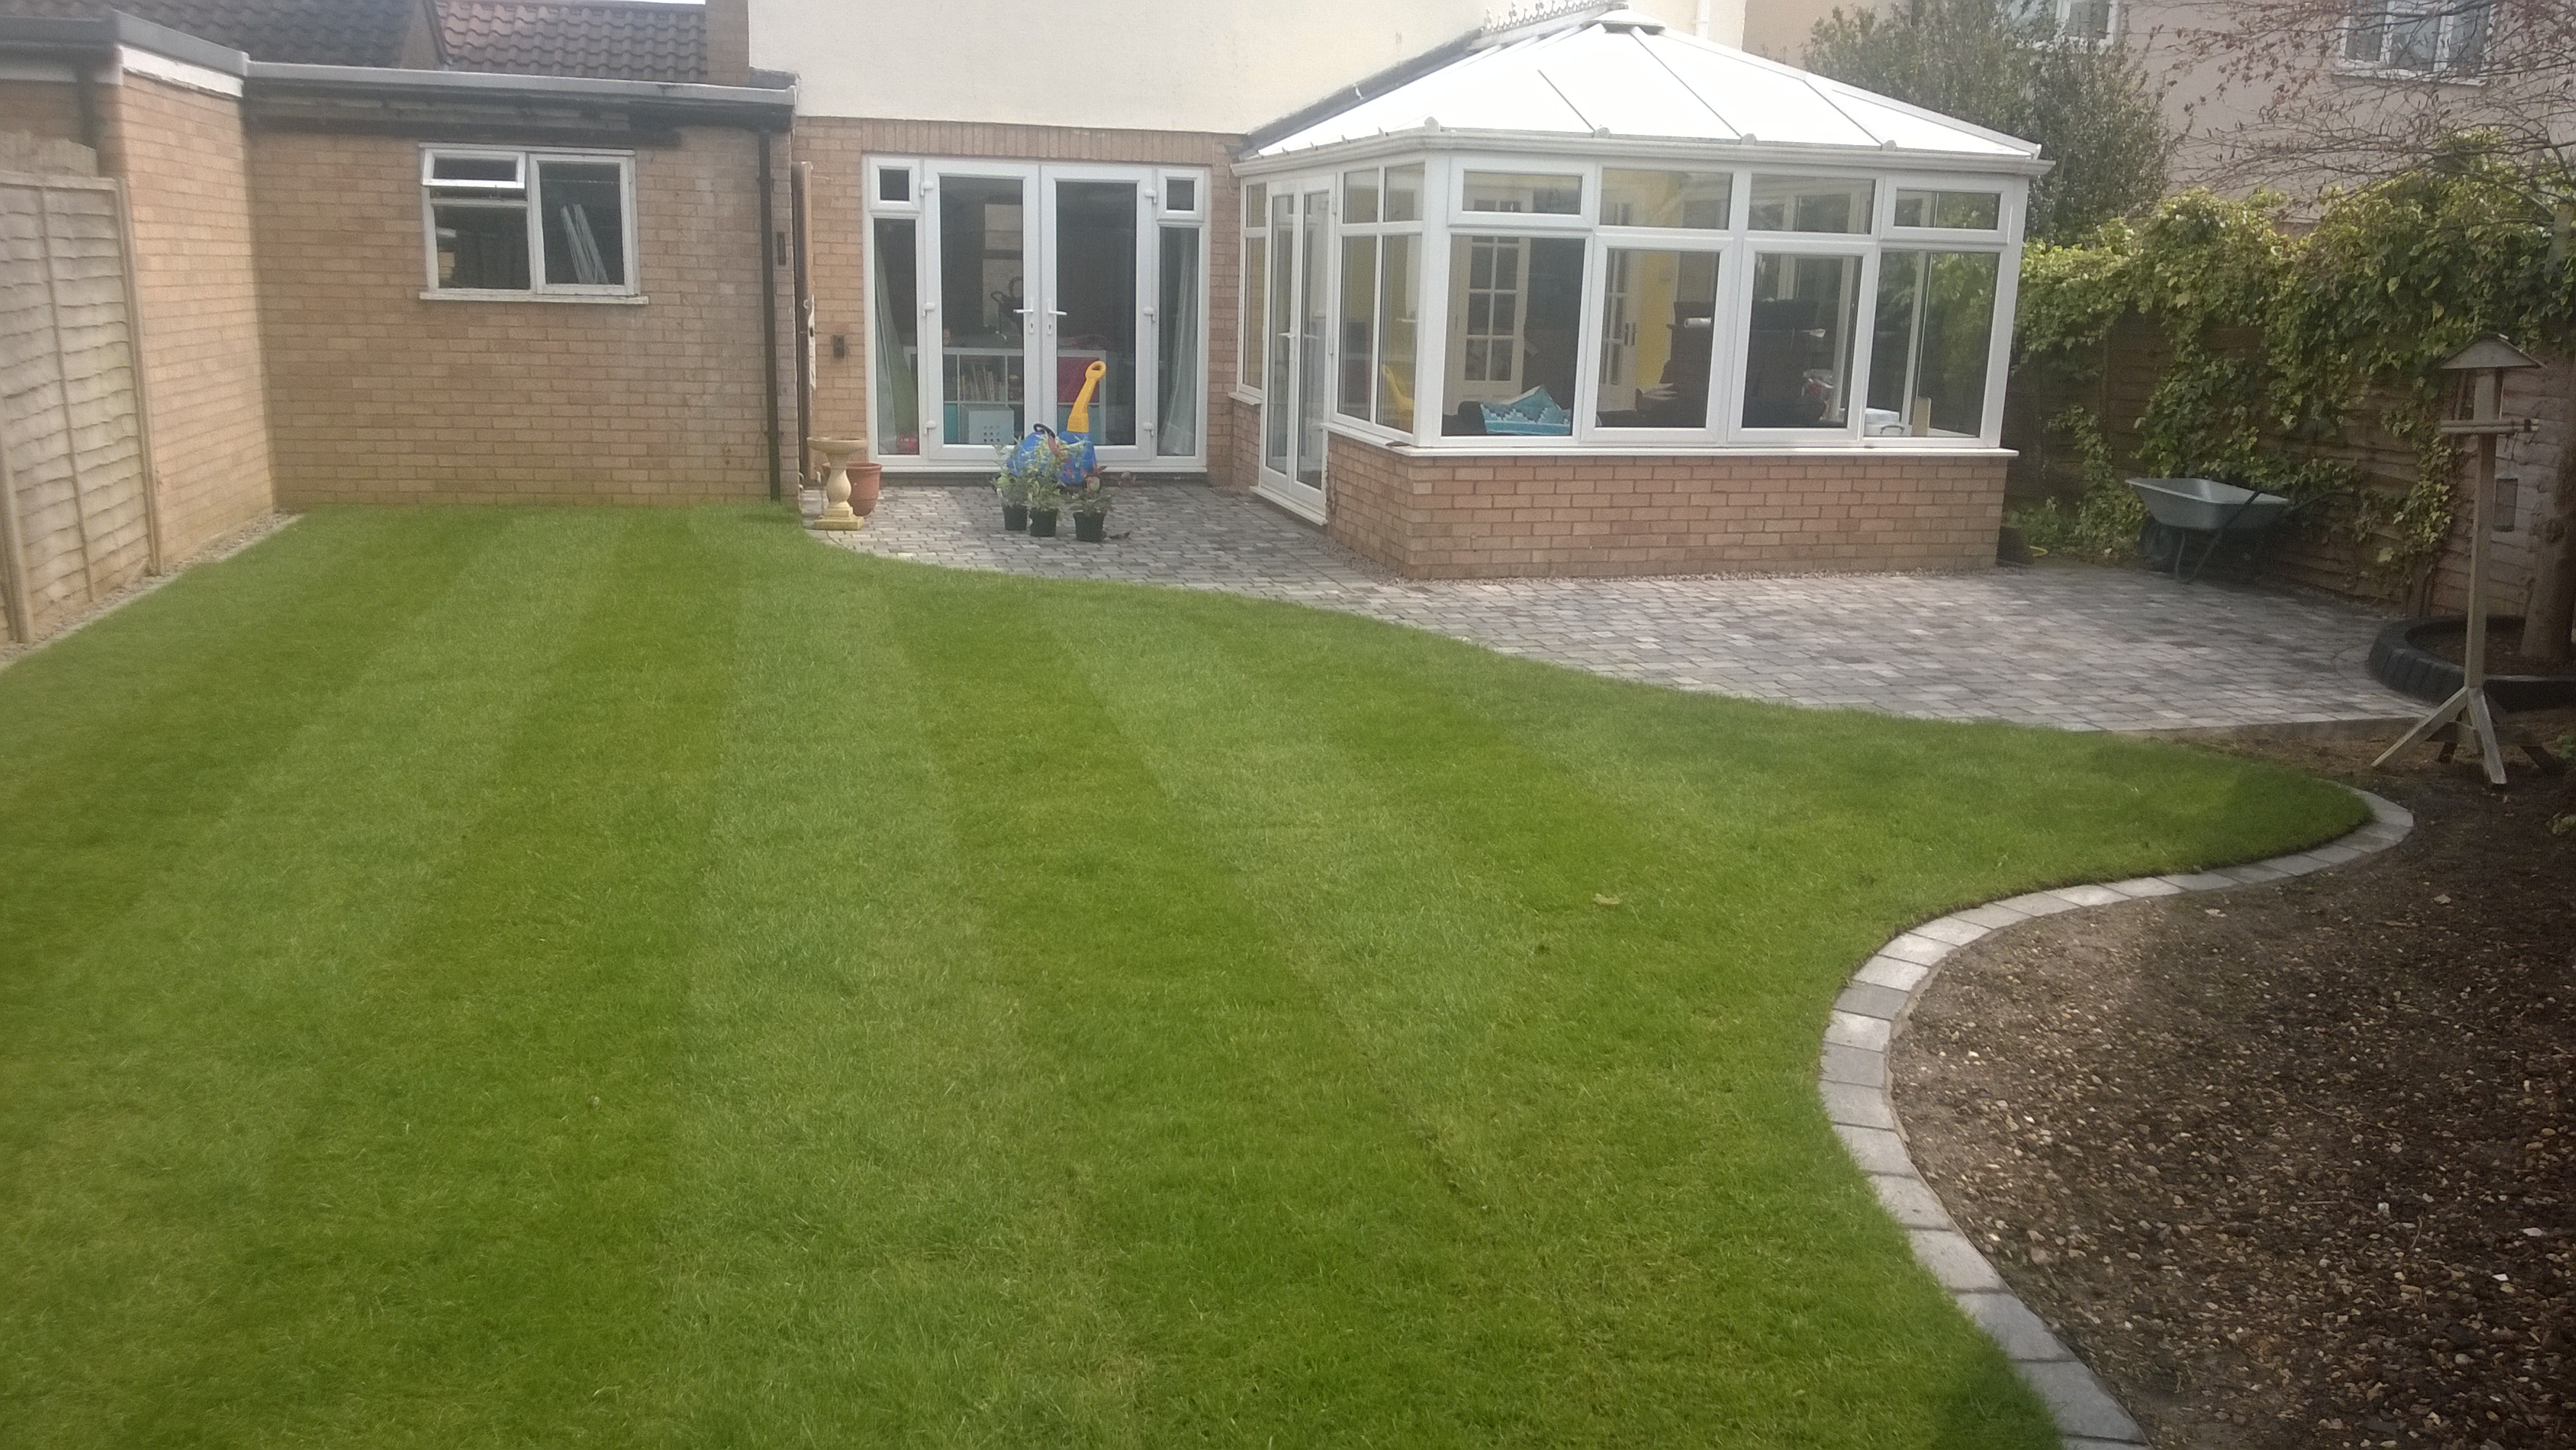 garden design Archives - Becoming a Stay at Home Mum